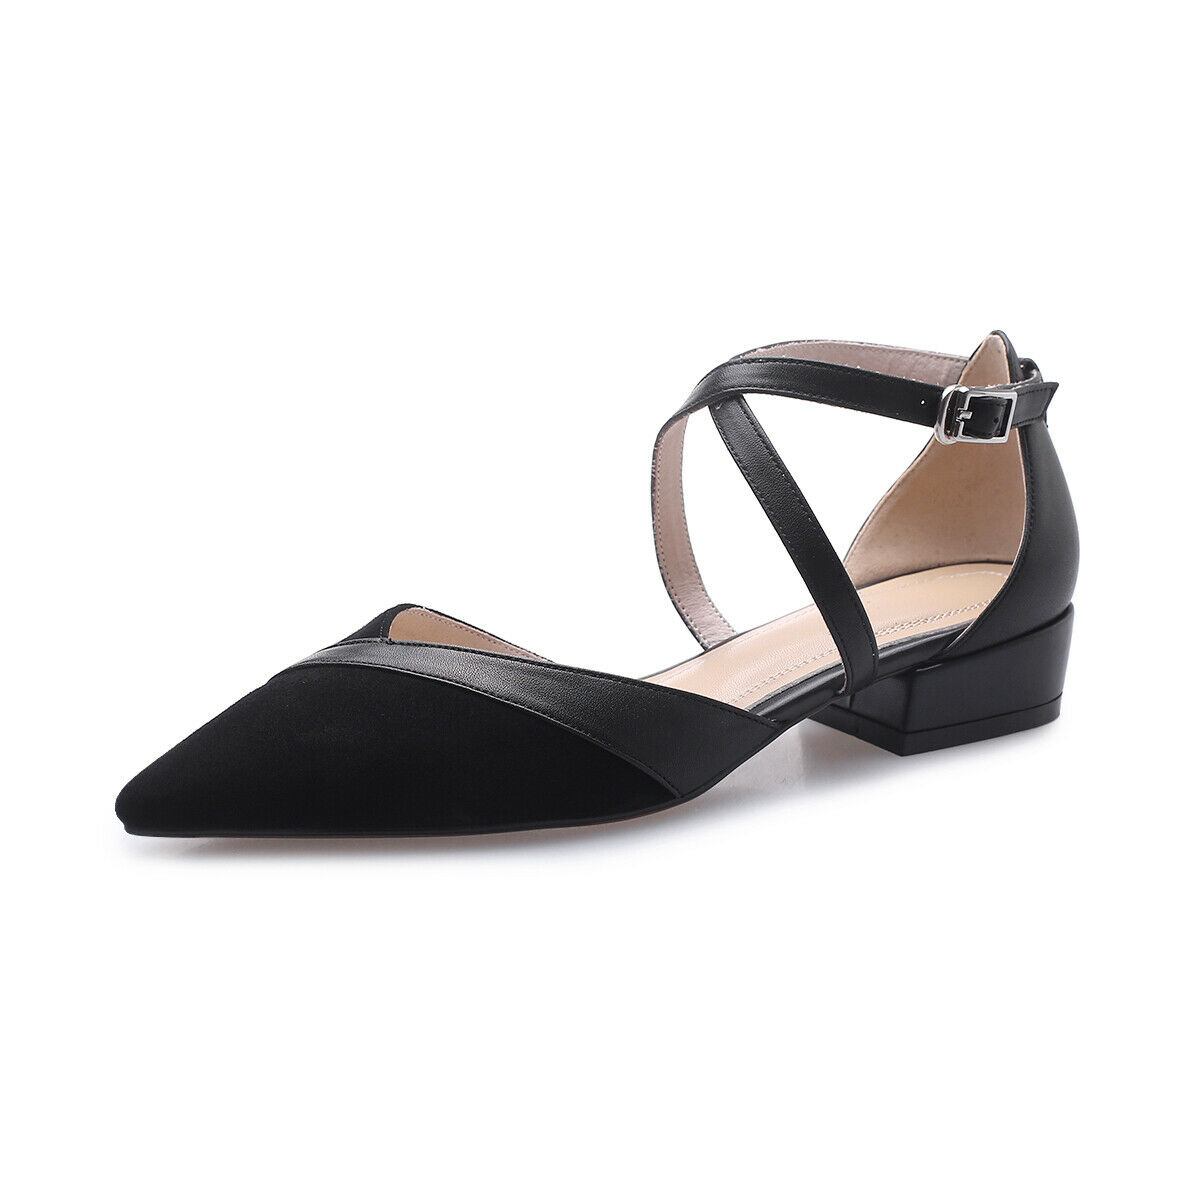 Womens Grace Pumps Solid Leather Pointy Toe Low Heel Buckle Casual Party shoes